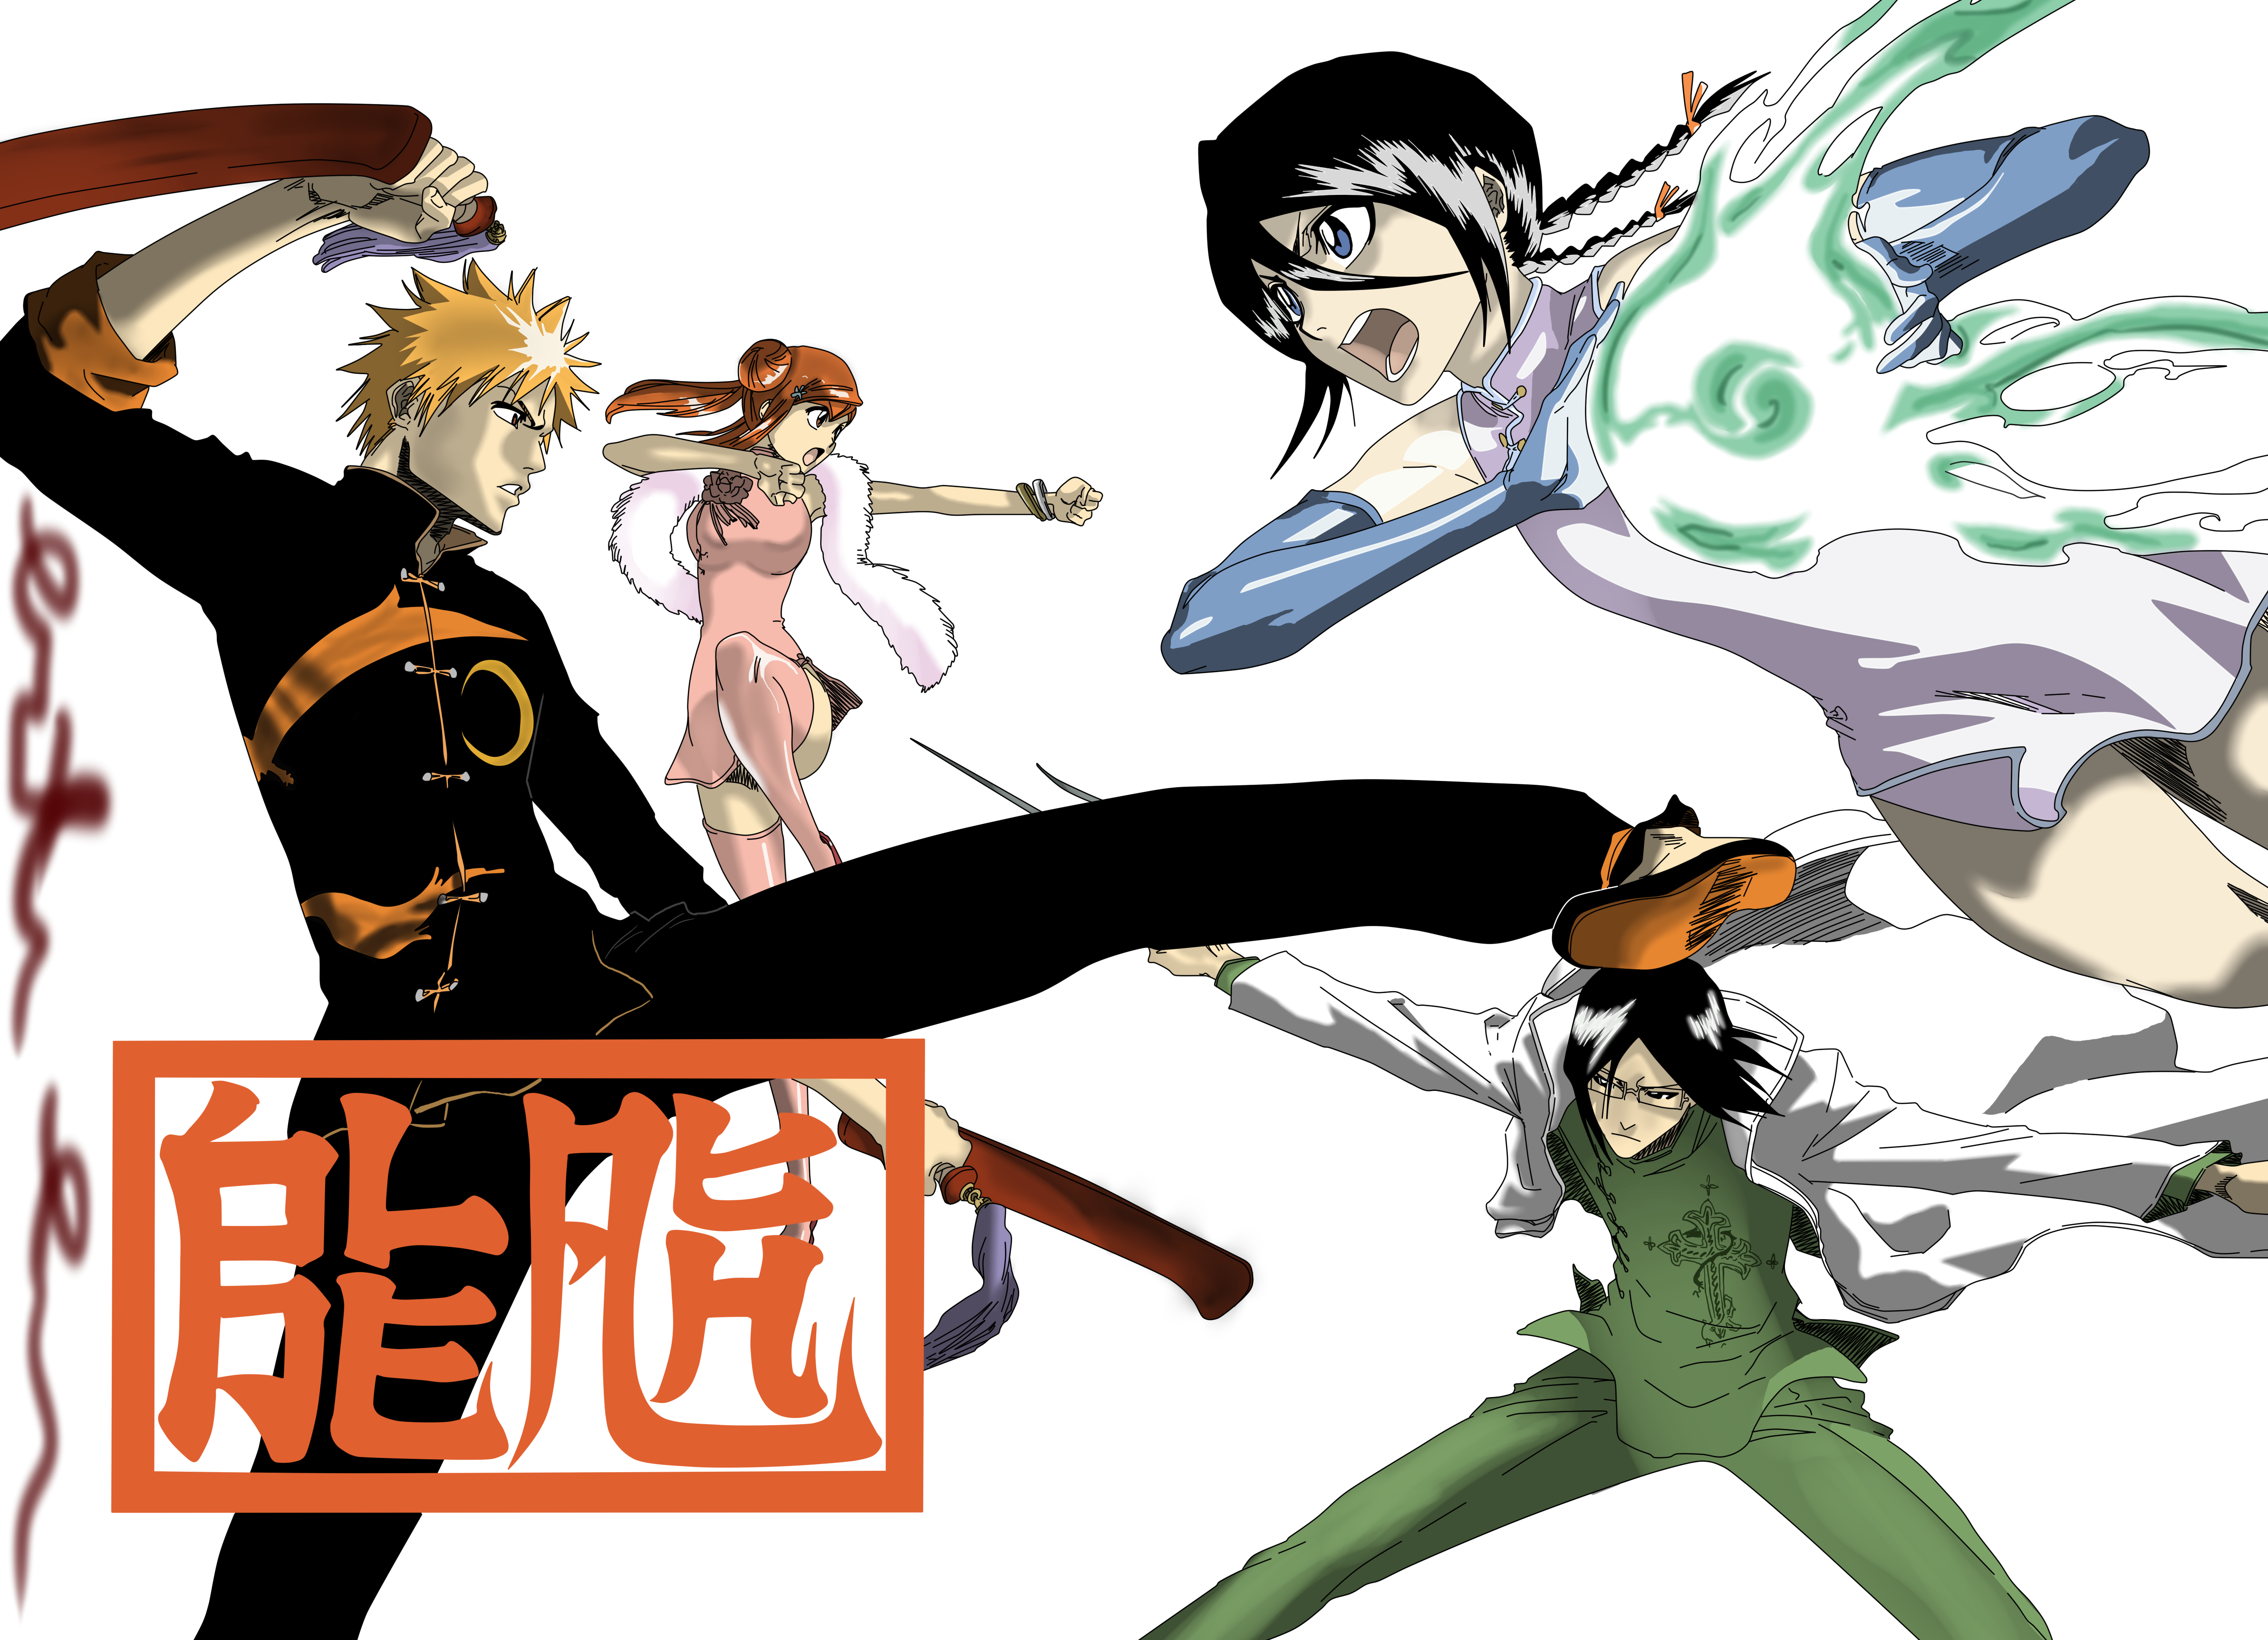 favourite art from bleach offical manga or fanart bleach